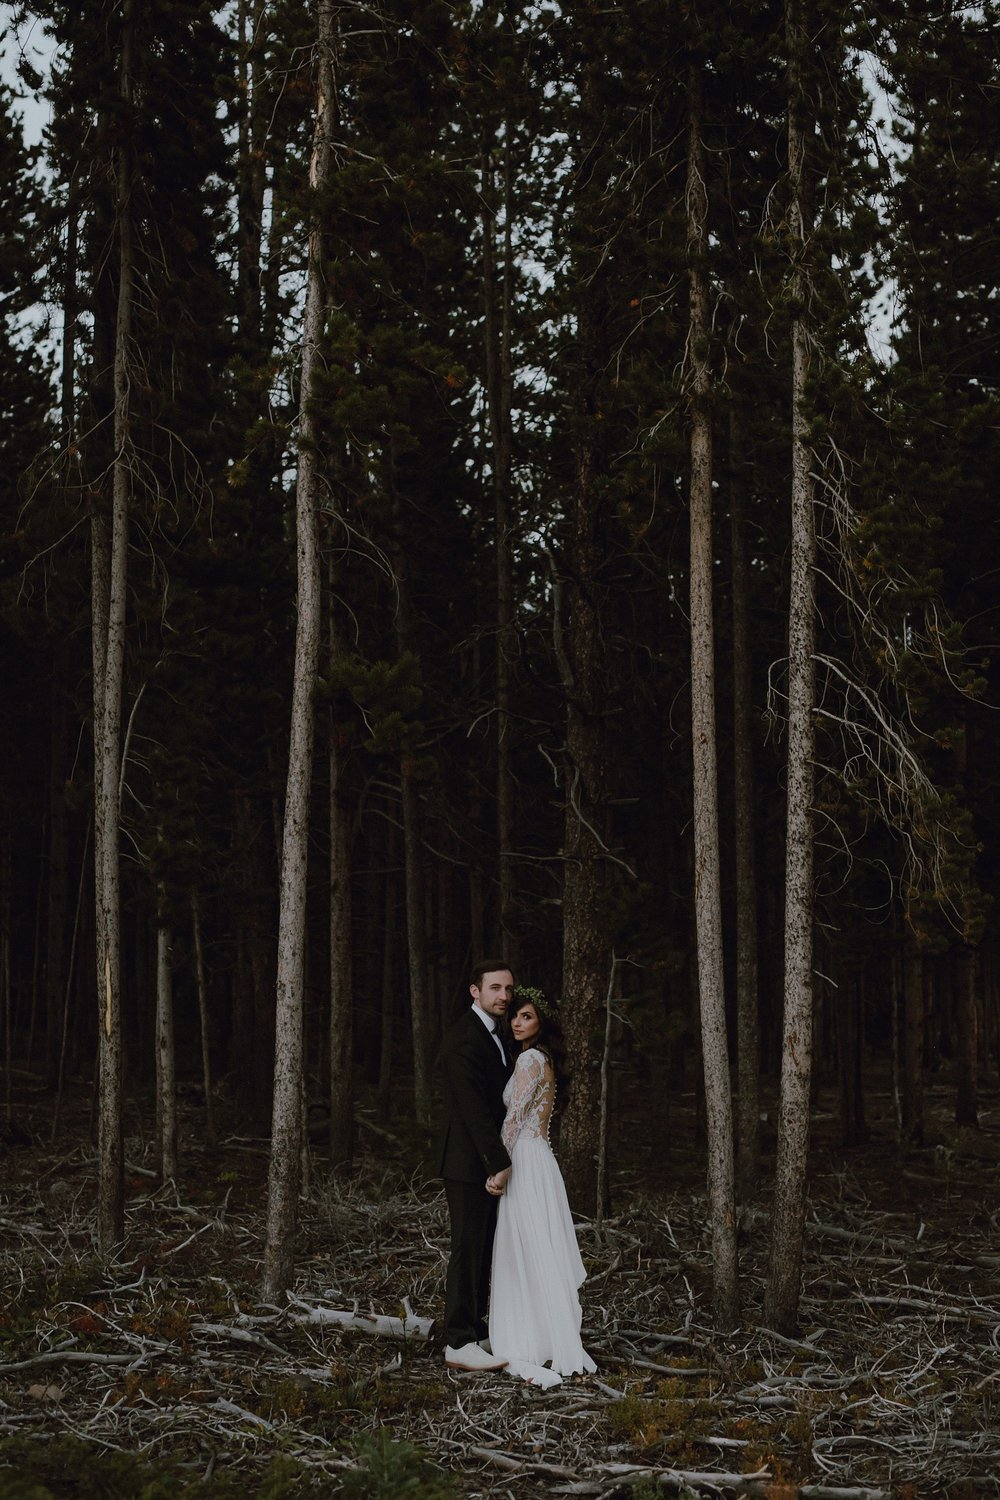 Amy & Cameron // Ten Mile Station // Breckenridge, CO